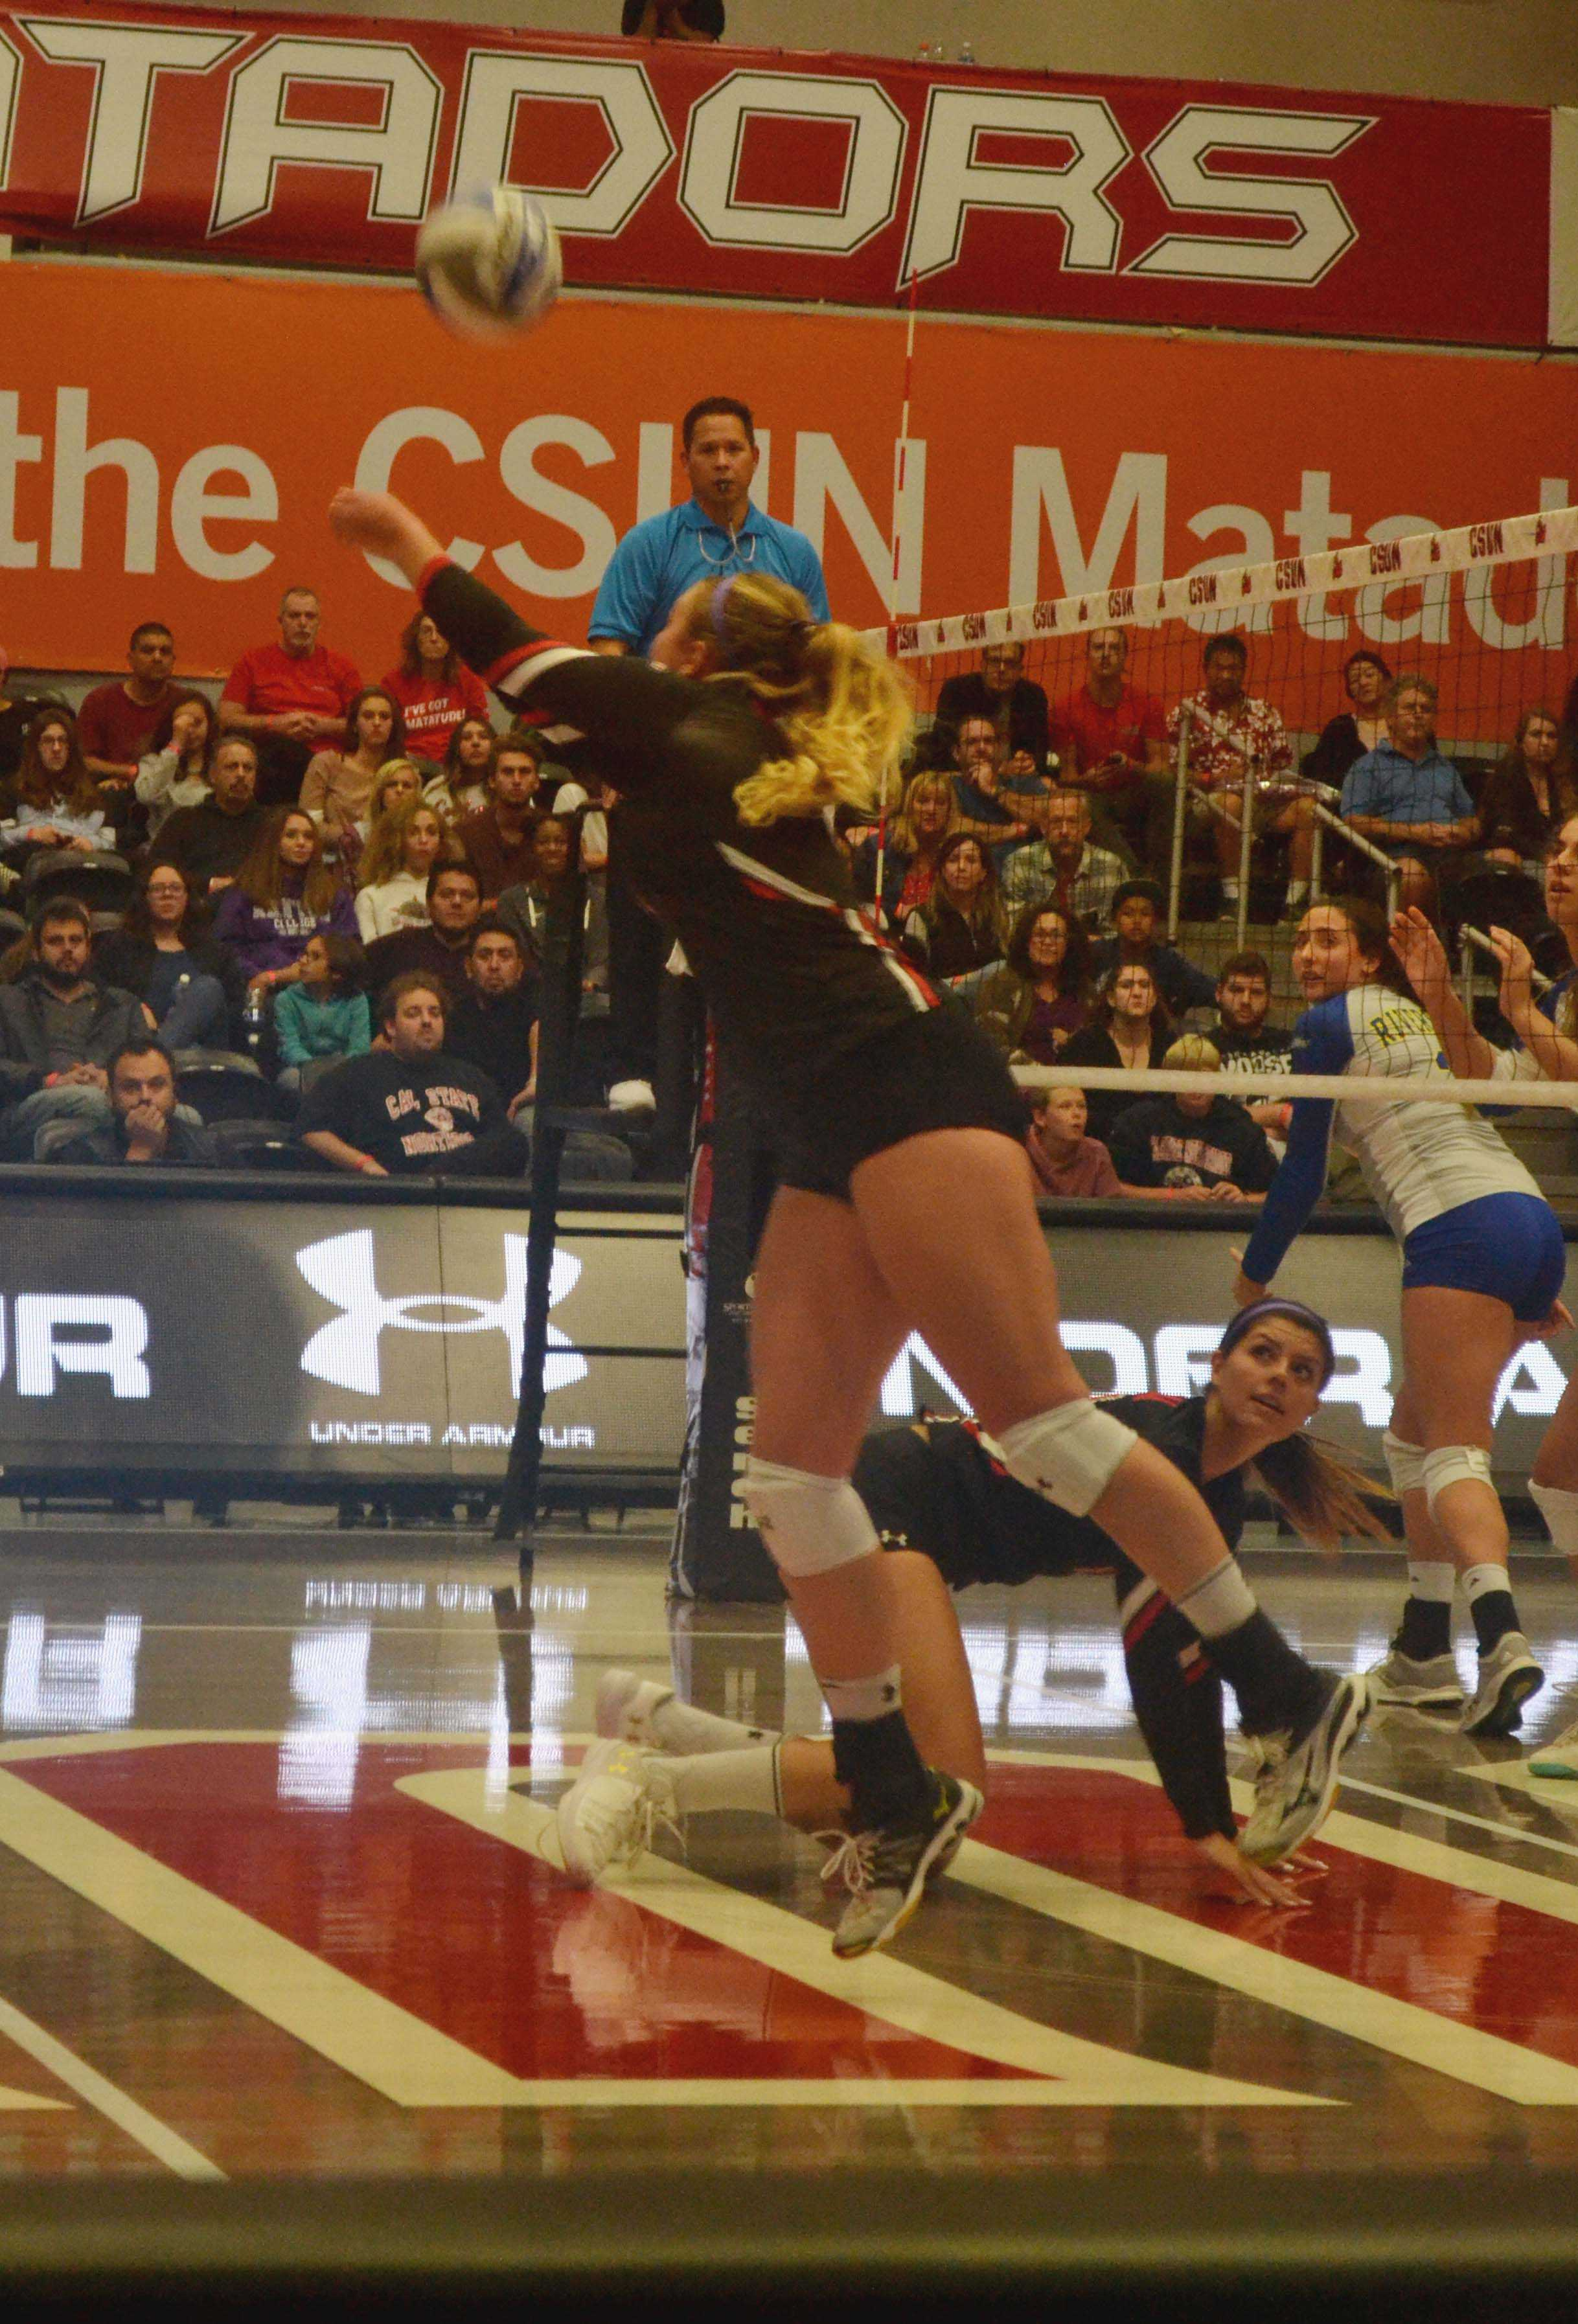 CSUN woman volleyball player in action hitting a ball